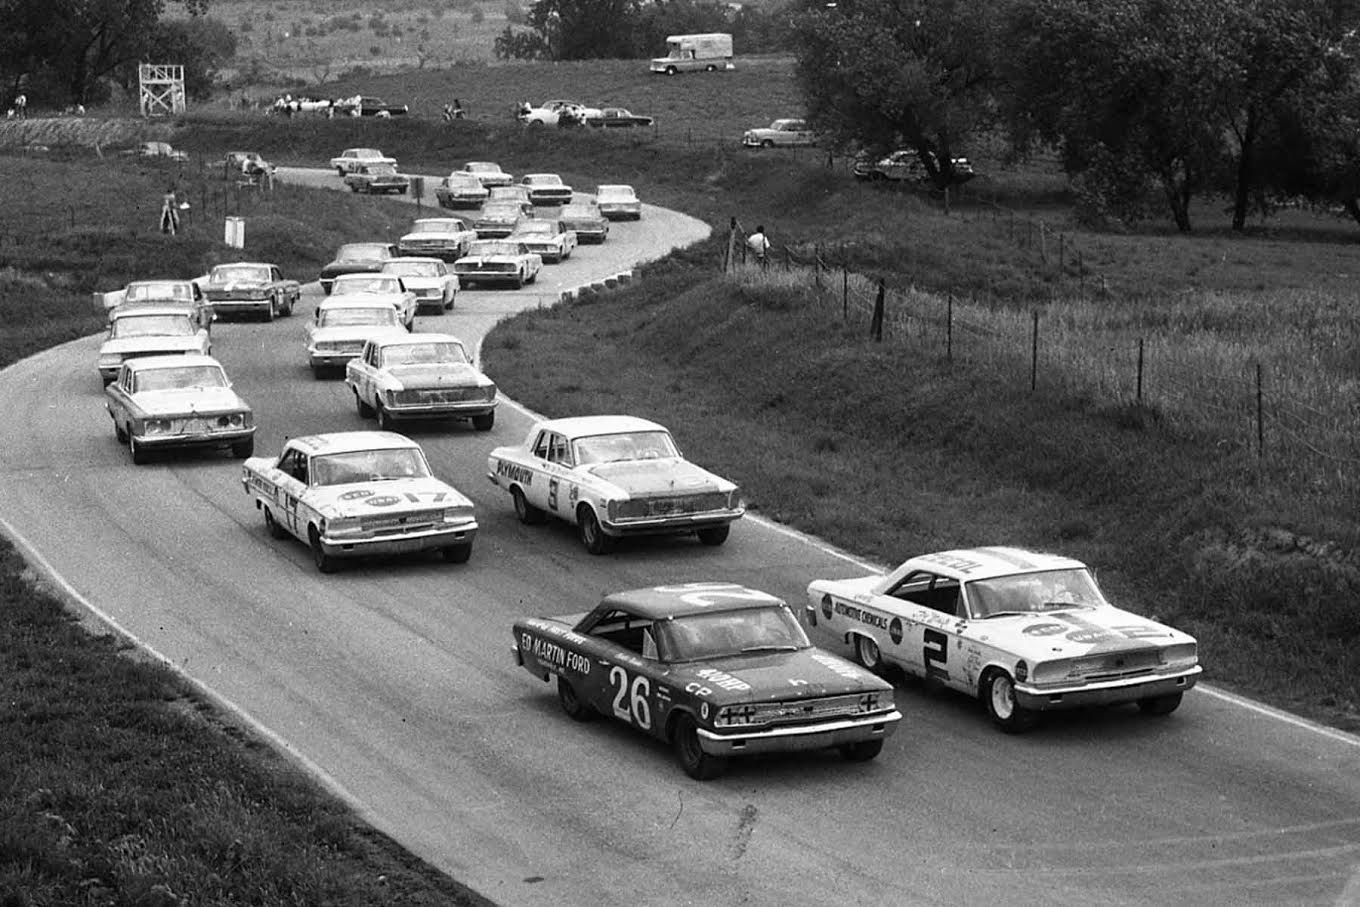 The field is lined up ready to go at Meadowdale for the scheduled 250-mile USAC Stock Car race. Row one has the 1963 Fords of Don White #2 and Curtis Turner #26. Row two is occupied by Norm Nelson #3 and Harry Heuer #17. [Photo by Russ Lake]